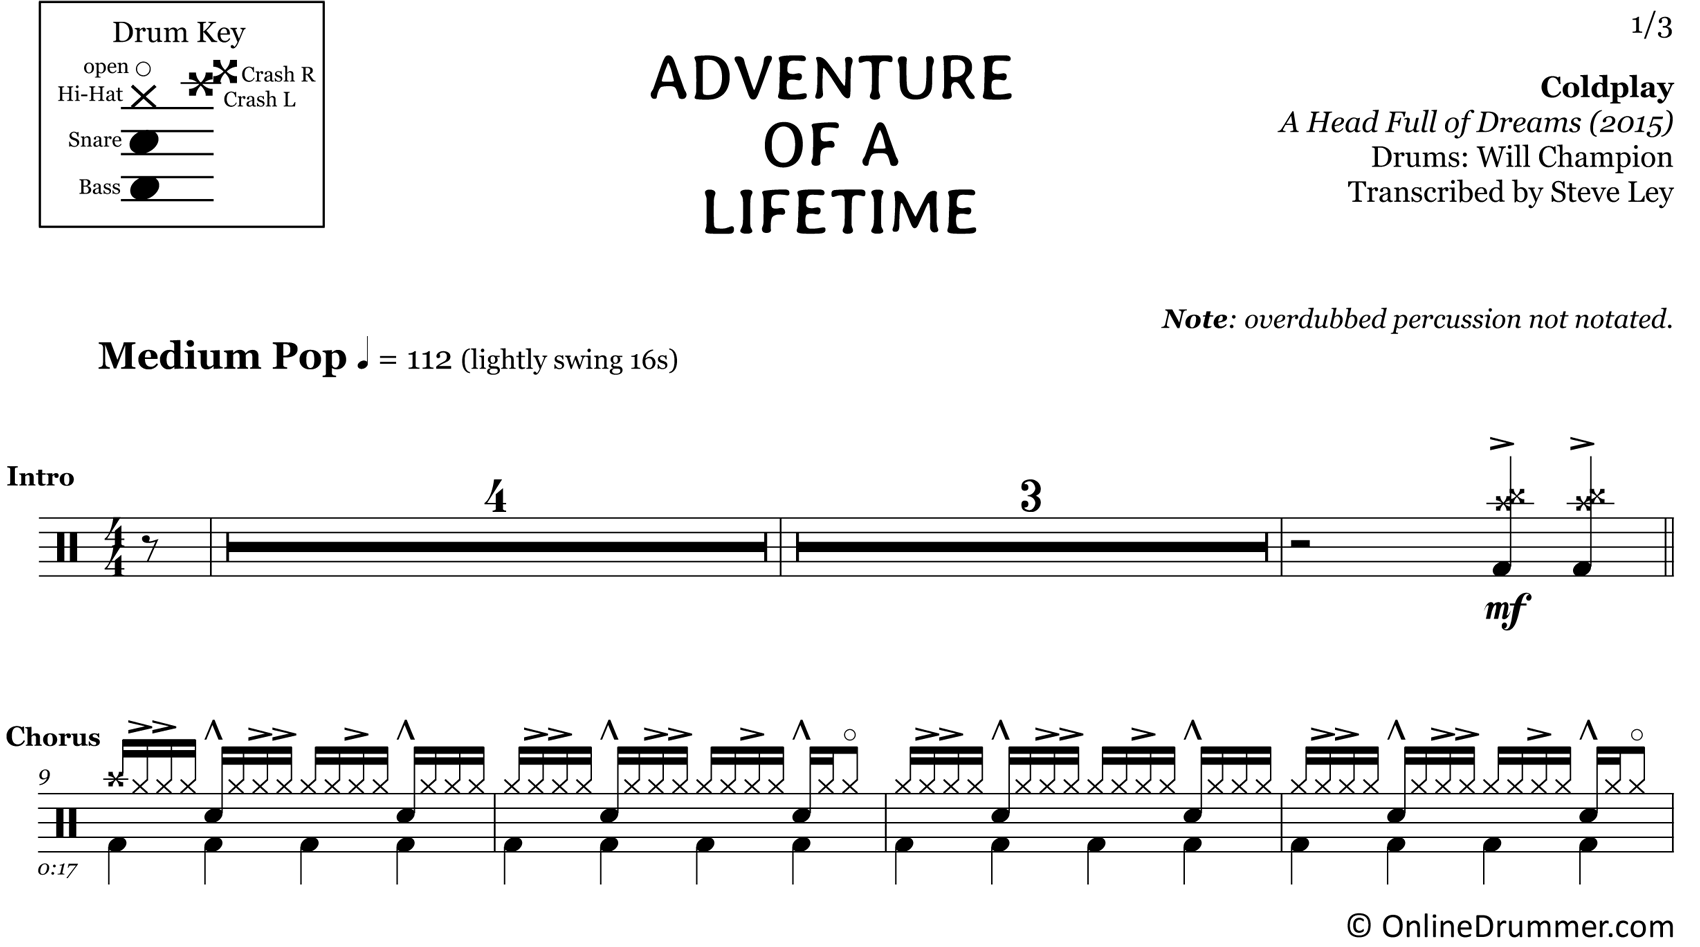 Adventure of a Lifetime - Coldplay - Drum Sheet Music